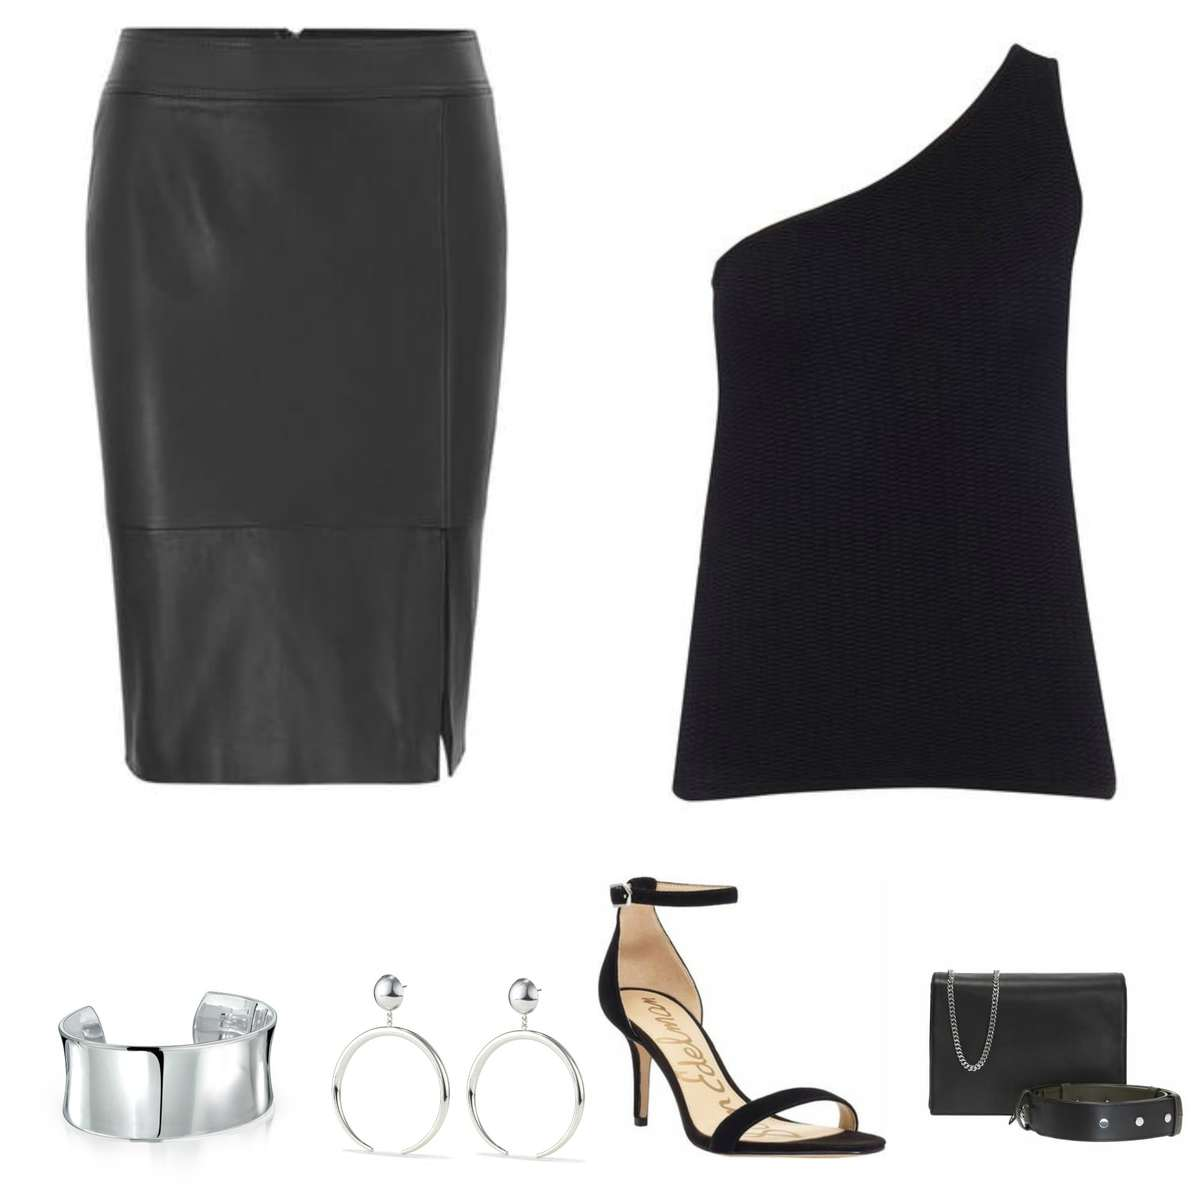 Image is of a black pencil skirt with a black one shouldered sweater, black ankle strap heeled sandals, black small handbag, silver cuff bracelet and silver statement earrings.